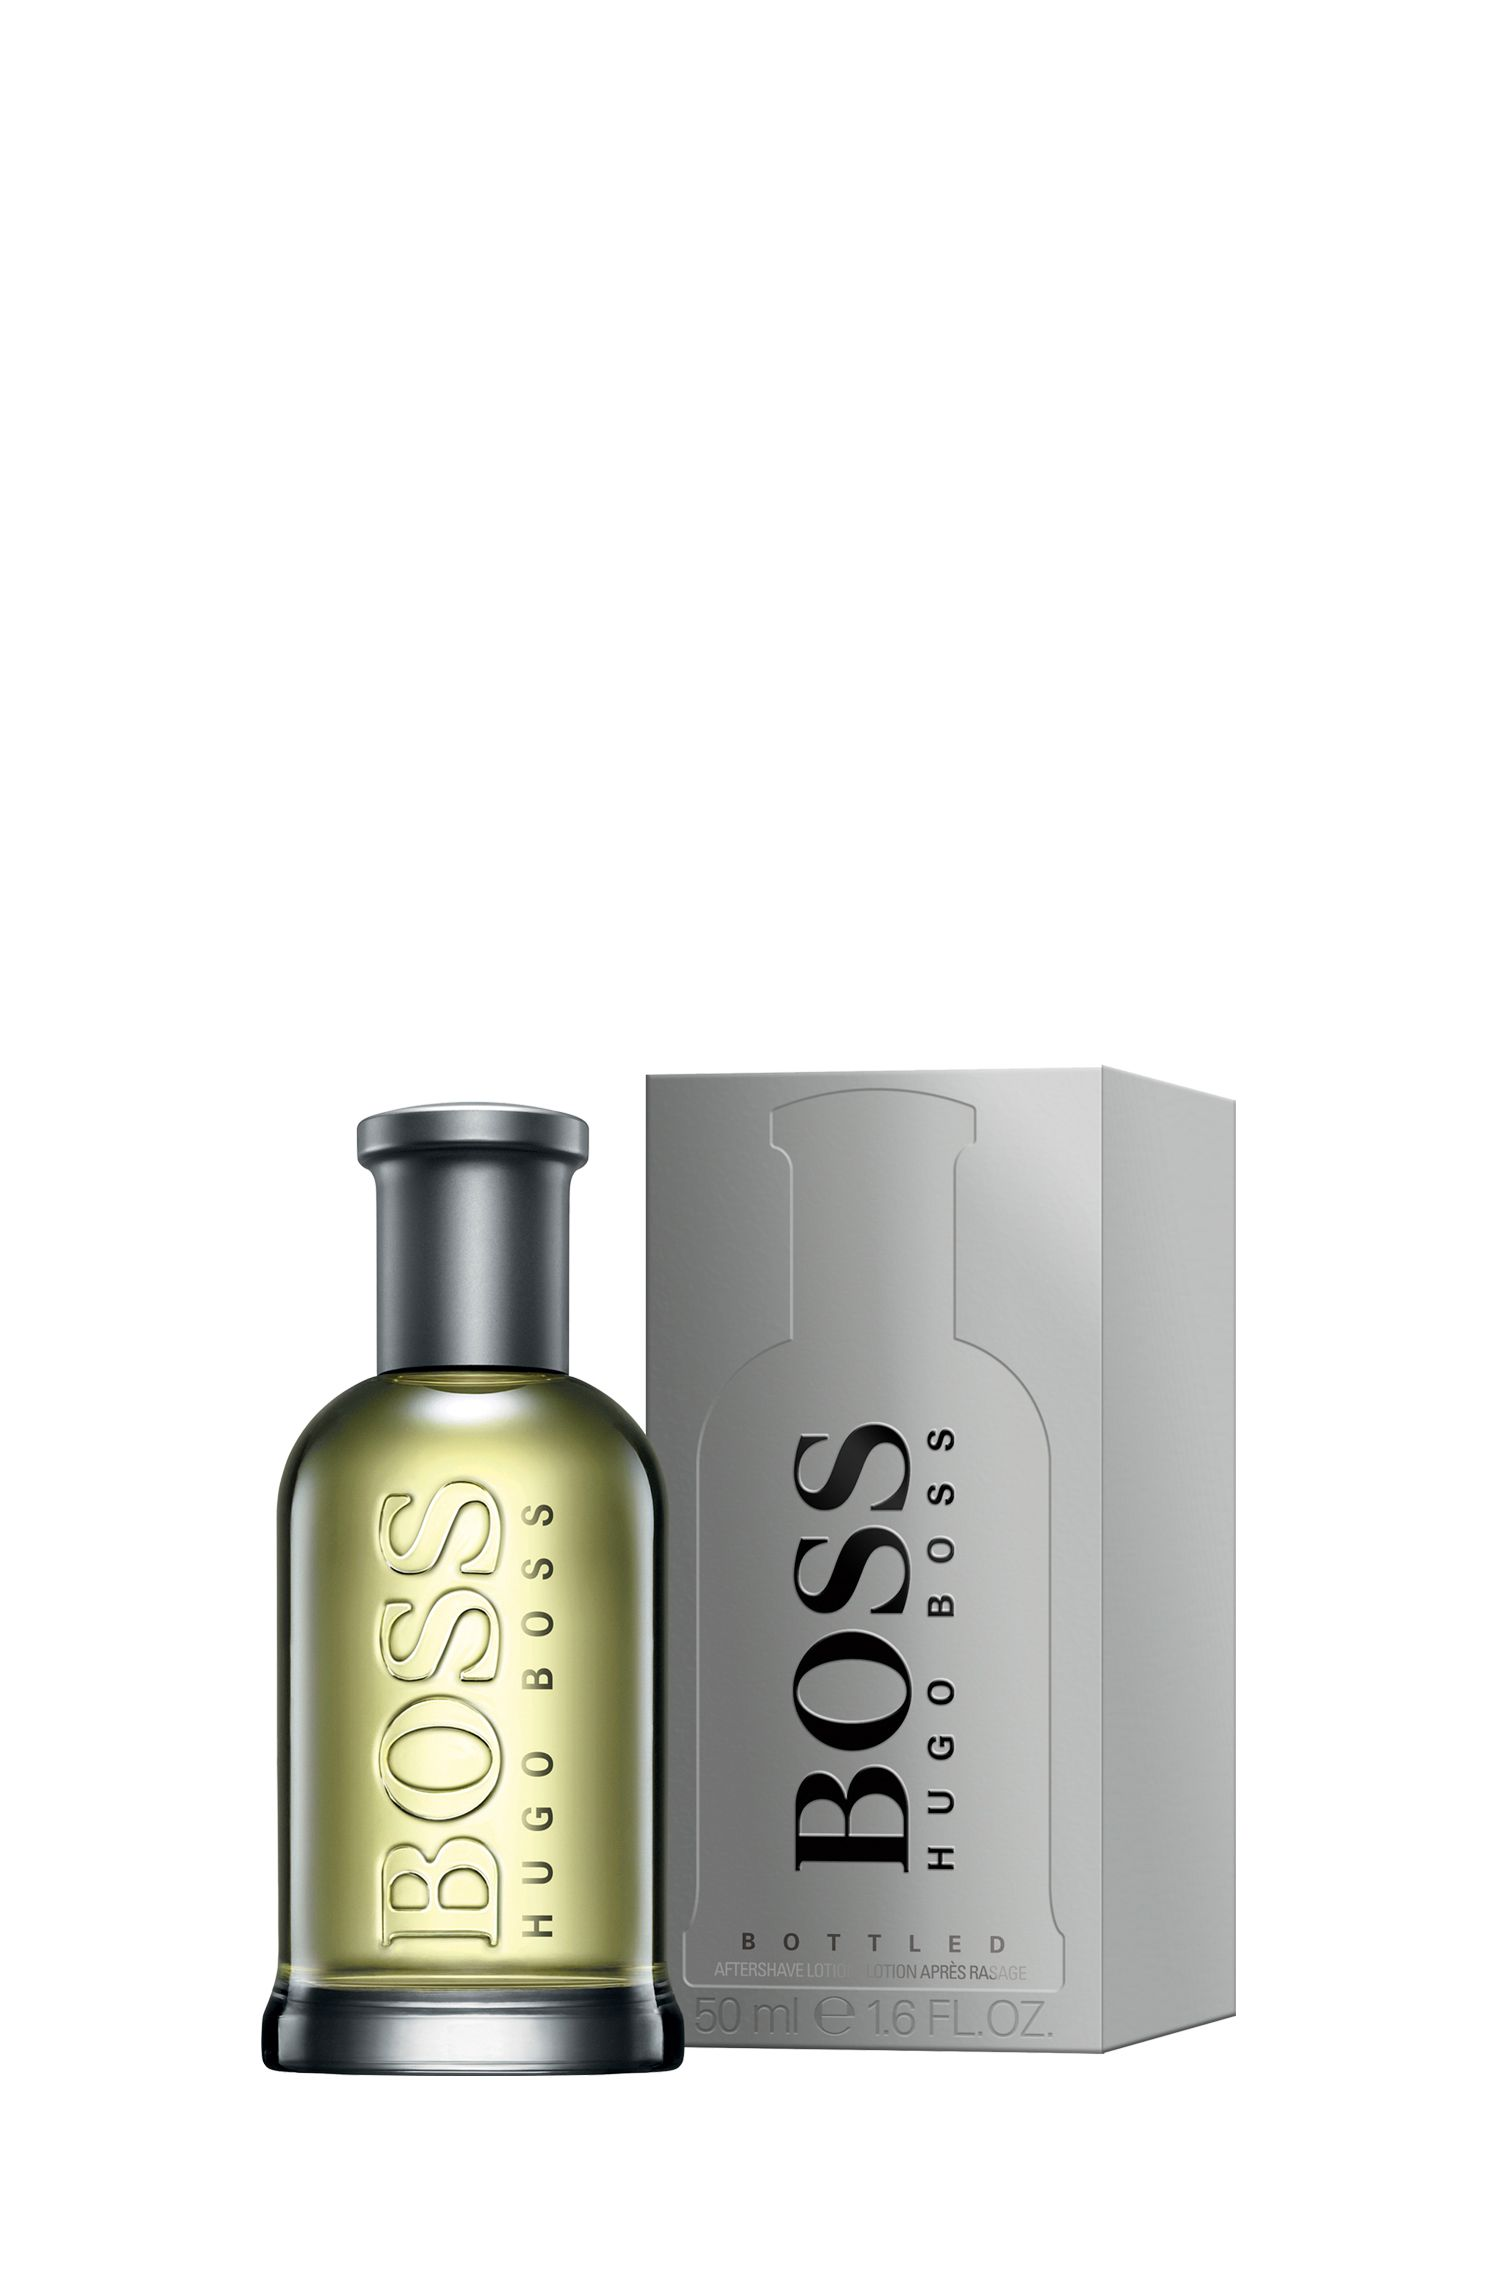 Lozione dopobarba BOSS Bottled da 50 ml